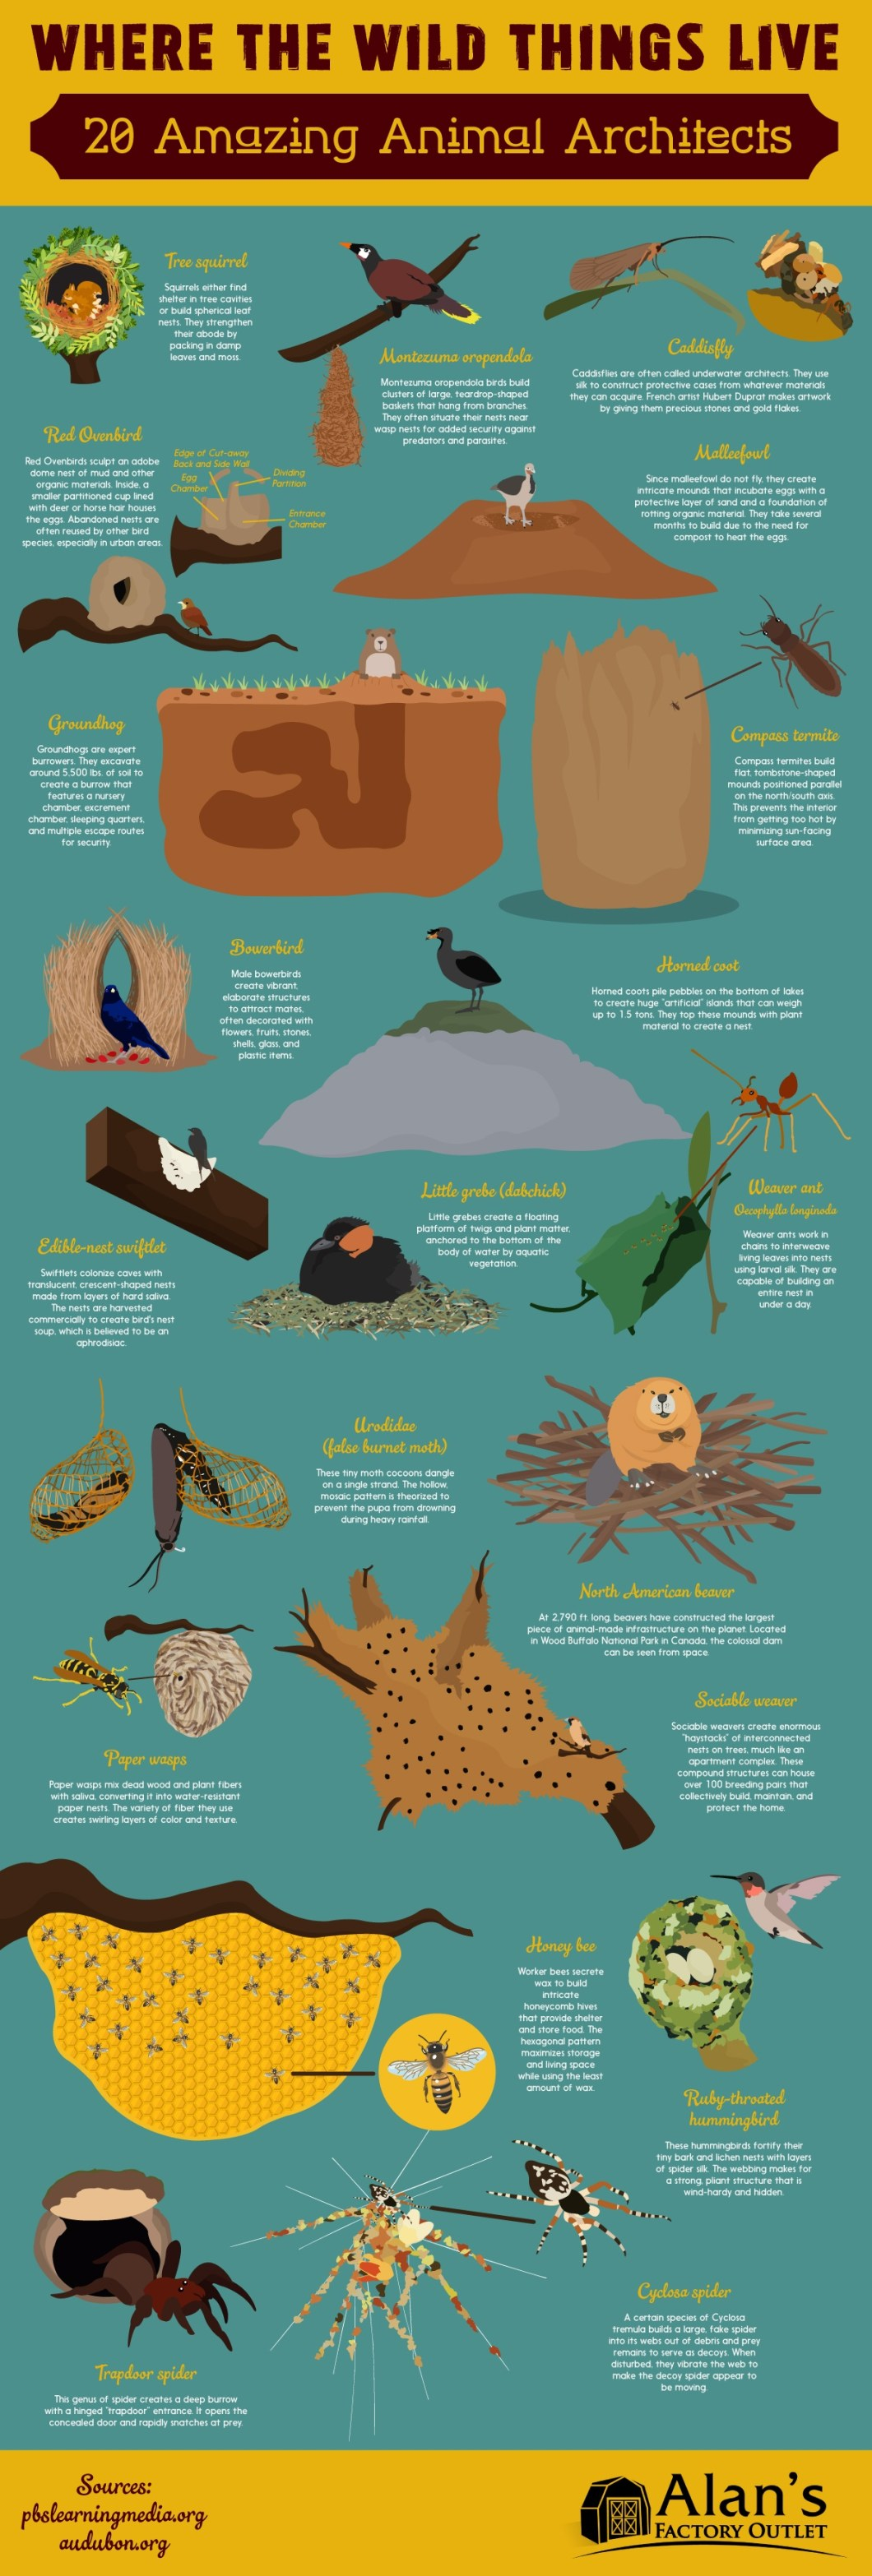 God-Gifted Architecture: 20 Animal Homes that are Marvels of Technology and Design - Infographic